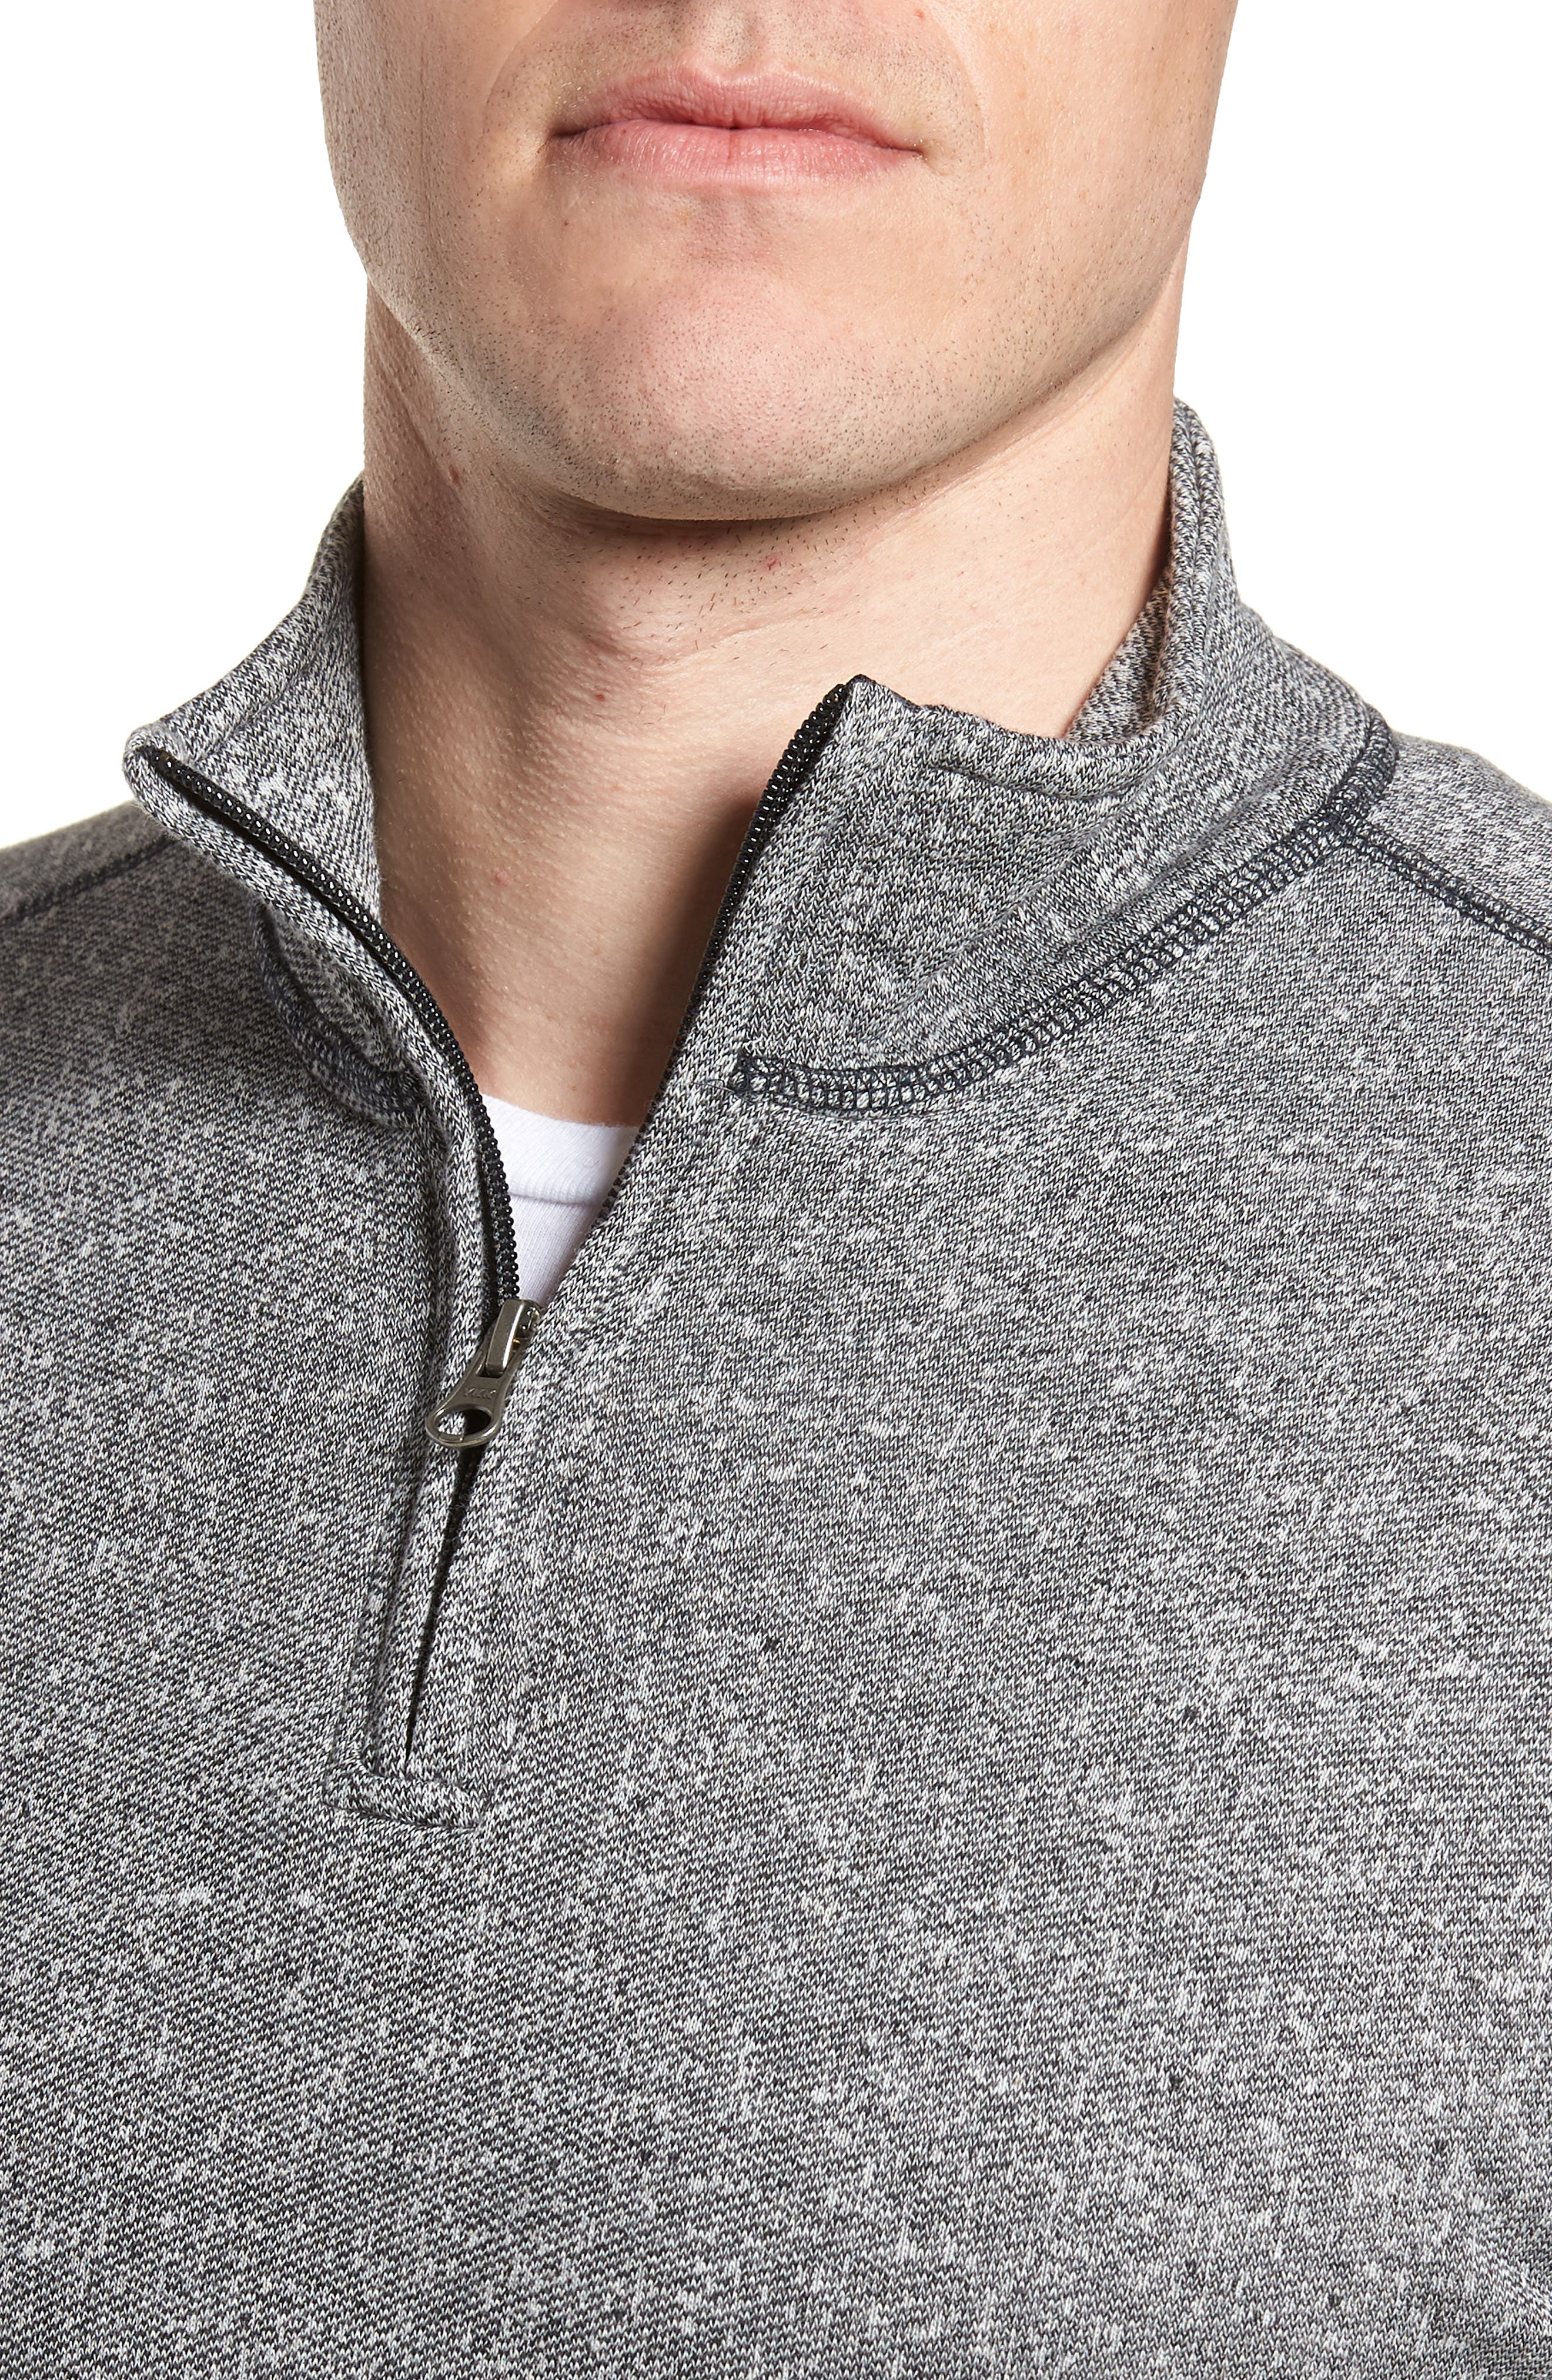 Regular Fit French Terry Pullover,                             Alternate thumbnail 4, color,                             010